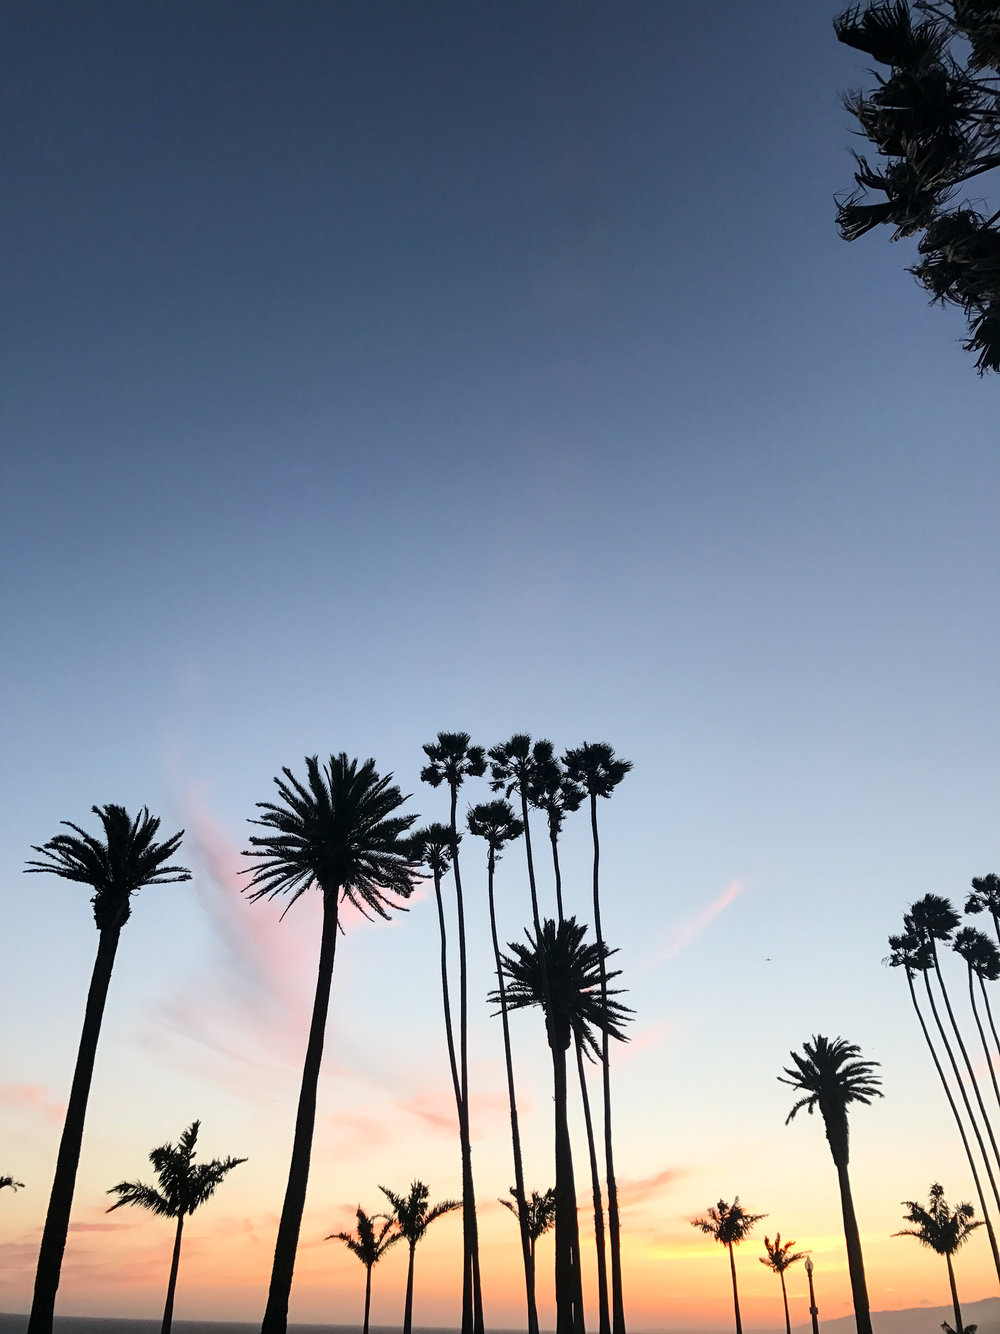 palm-trees-and-sunset.jpg